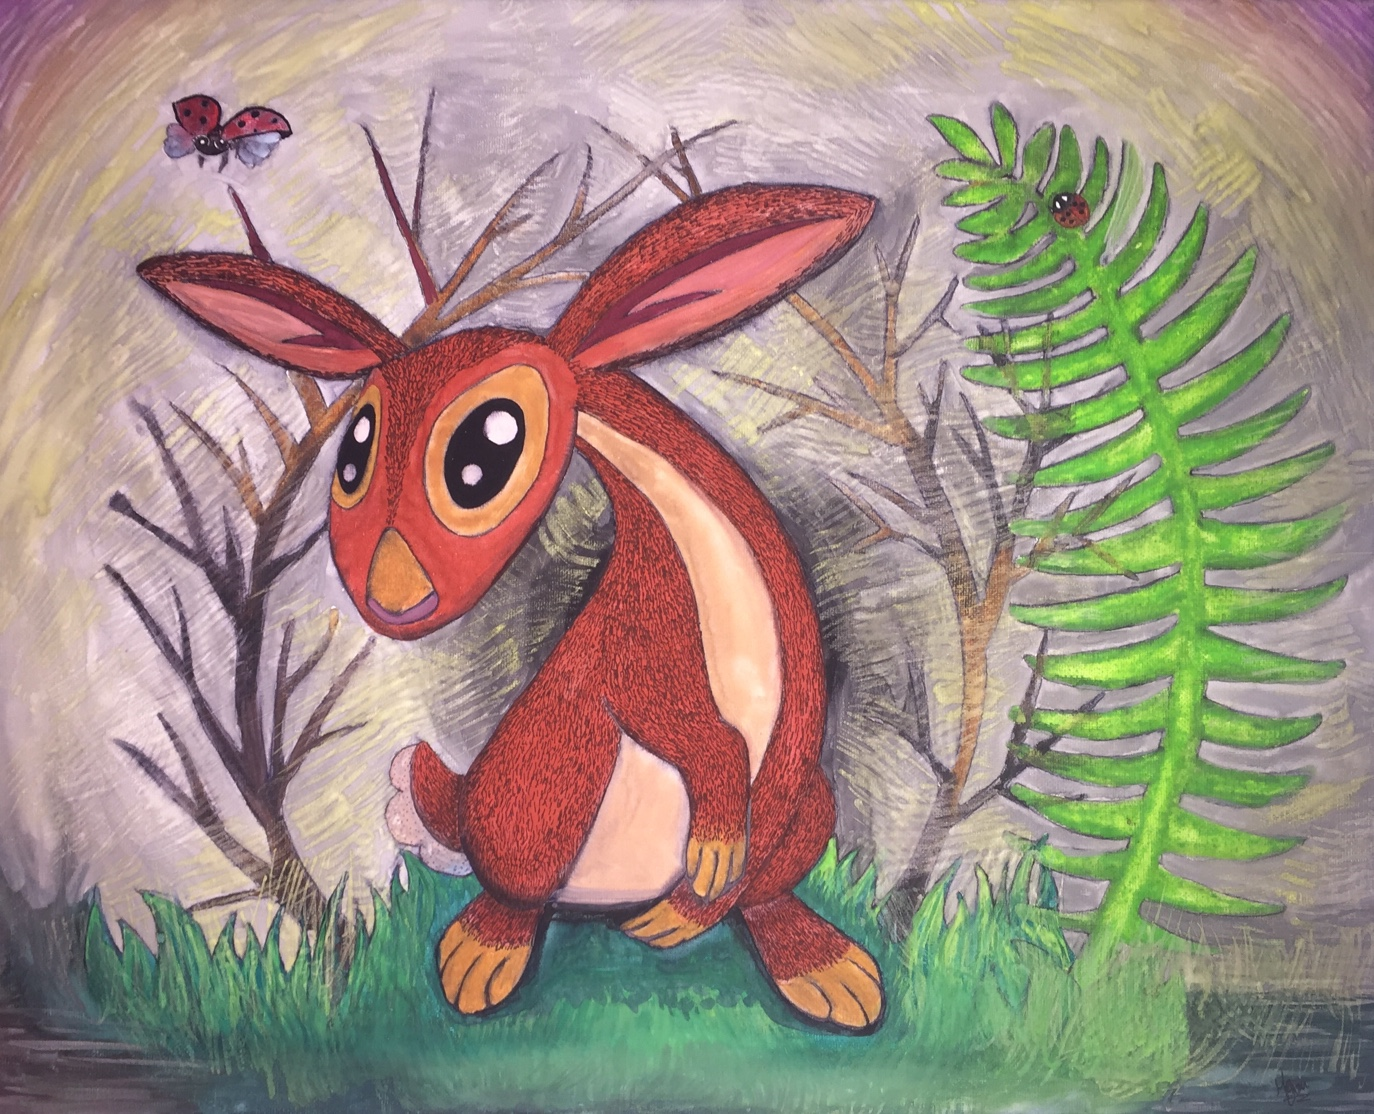 Swamp Bunny - watercolor and ink on canvas.